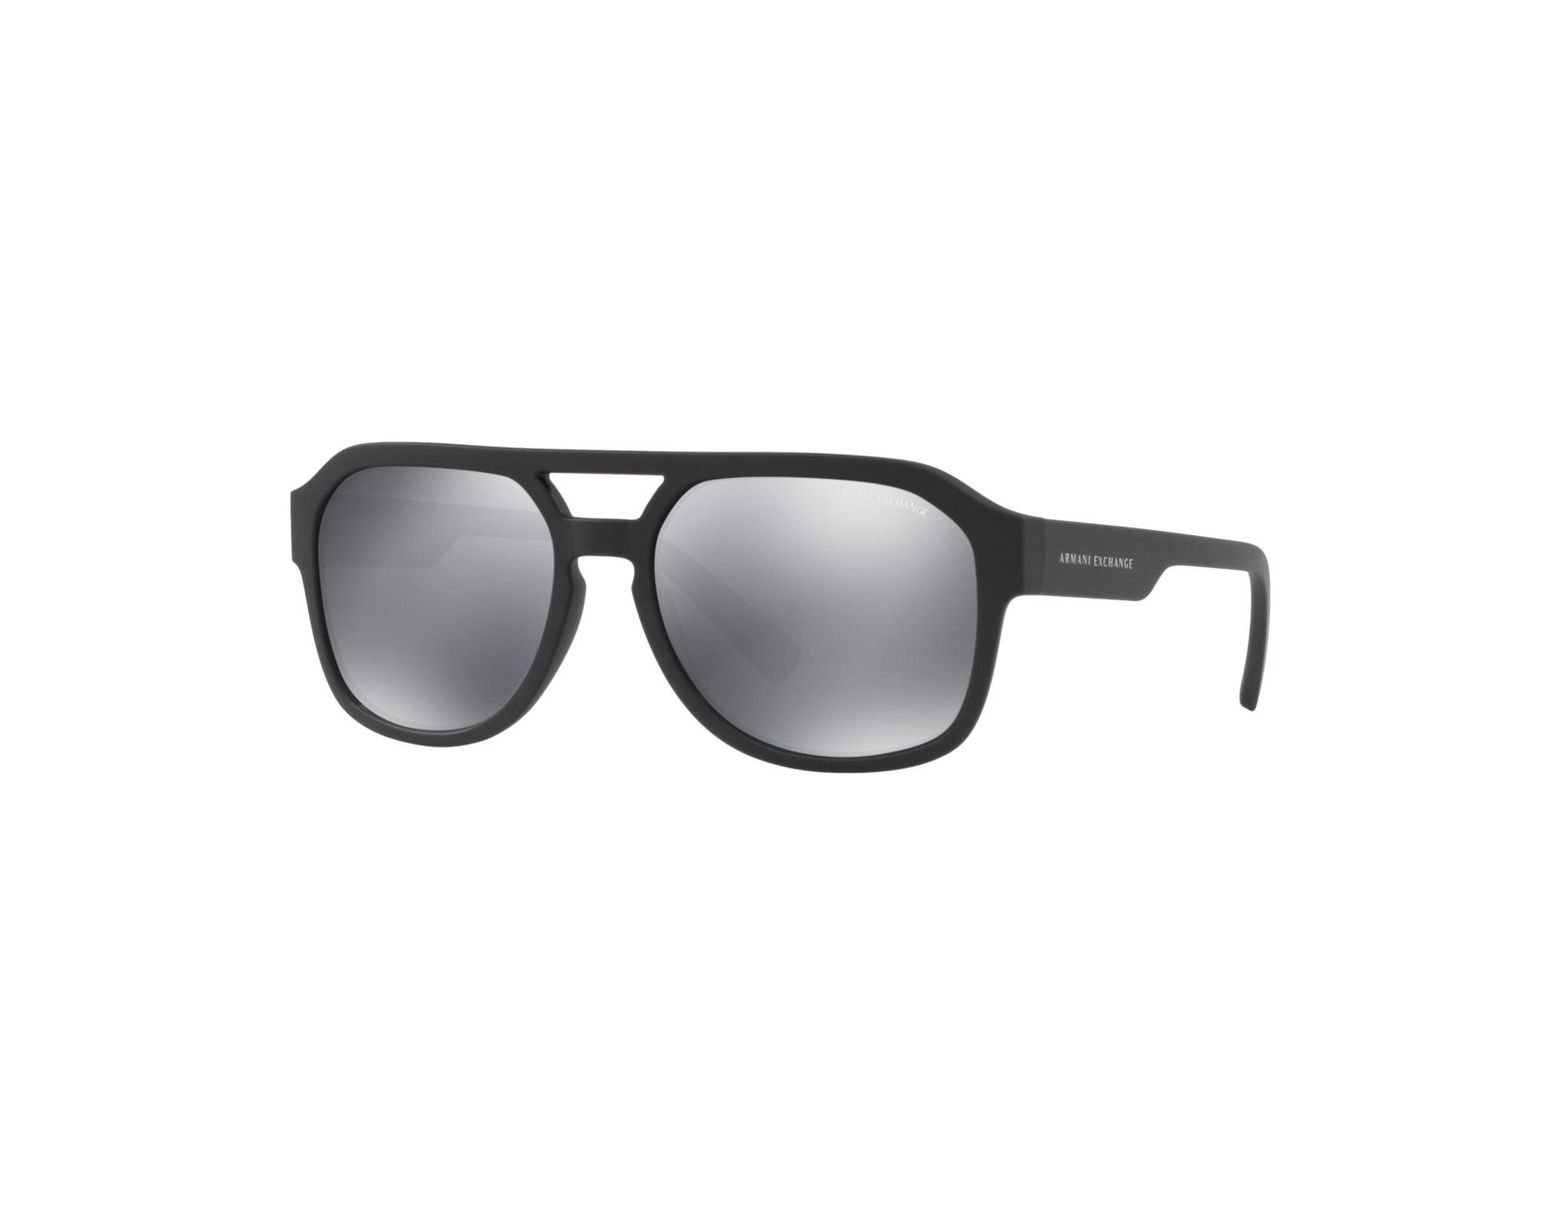 ef0f0abef Armani Exchange Sunglasses, Ax4074s in Black for Men - Lyst